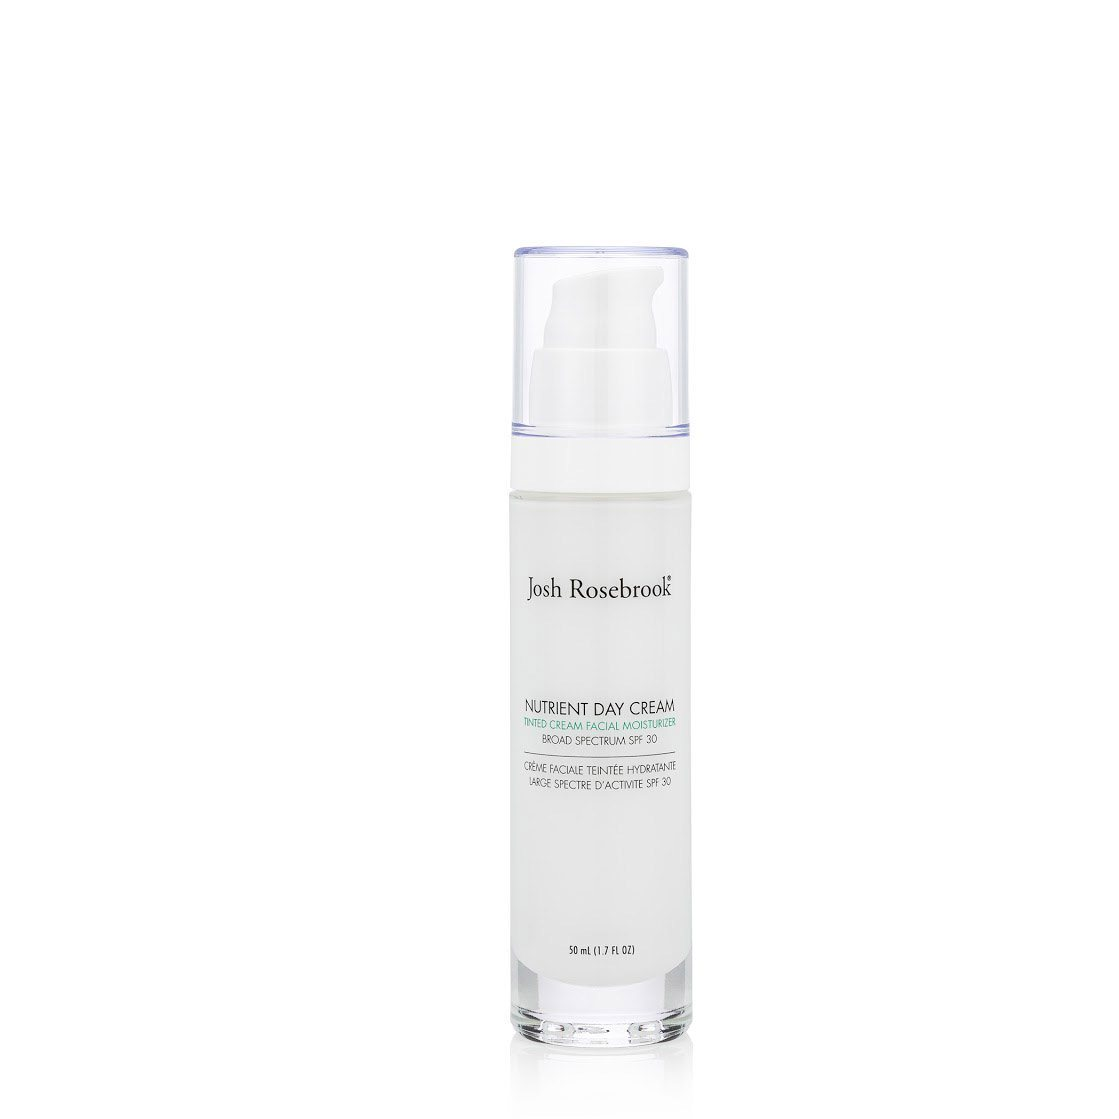 Nutrient Day Cream SPF30 Tinted Airless Pump Tagespflege Josh Rosebrook 30ml - Genuine Selection